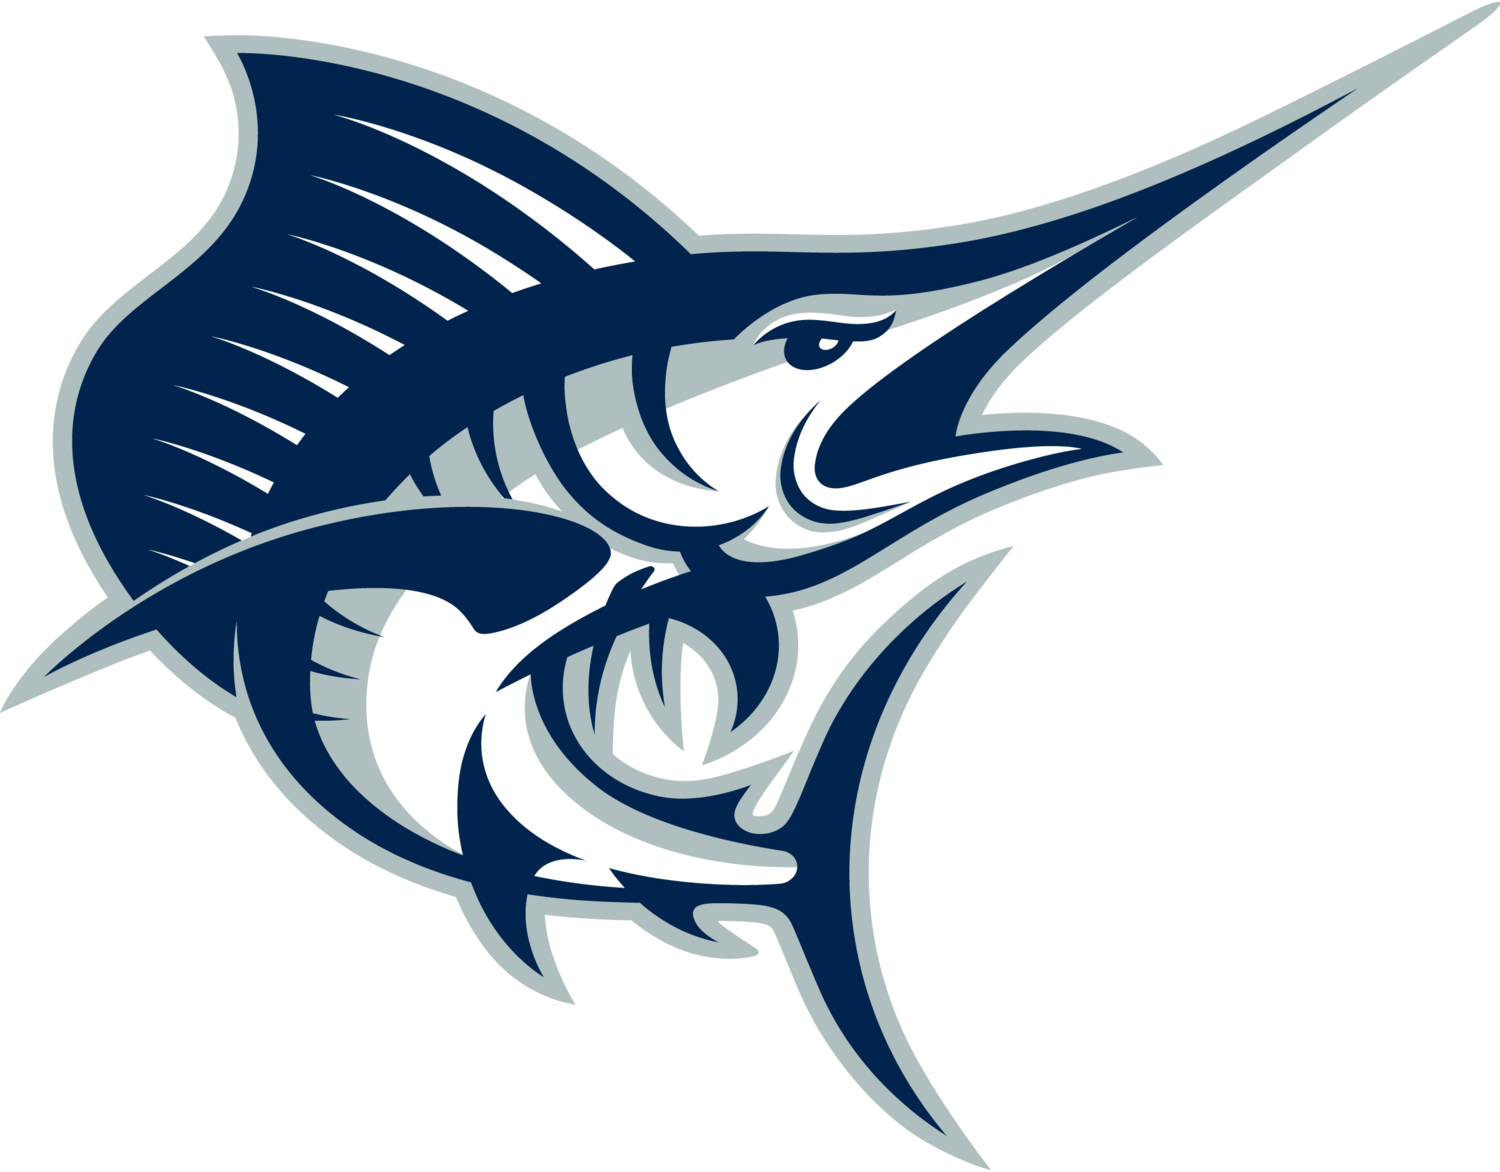 Sailfish Women's Lacrosse